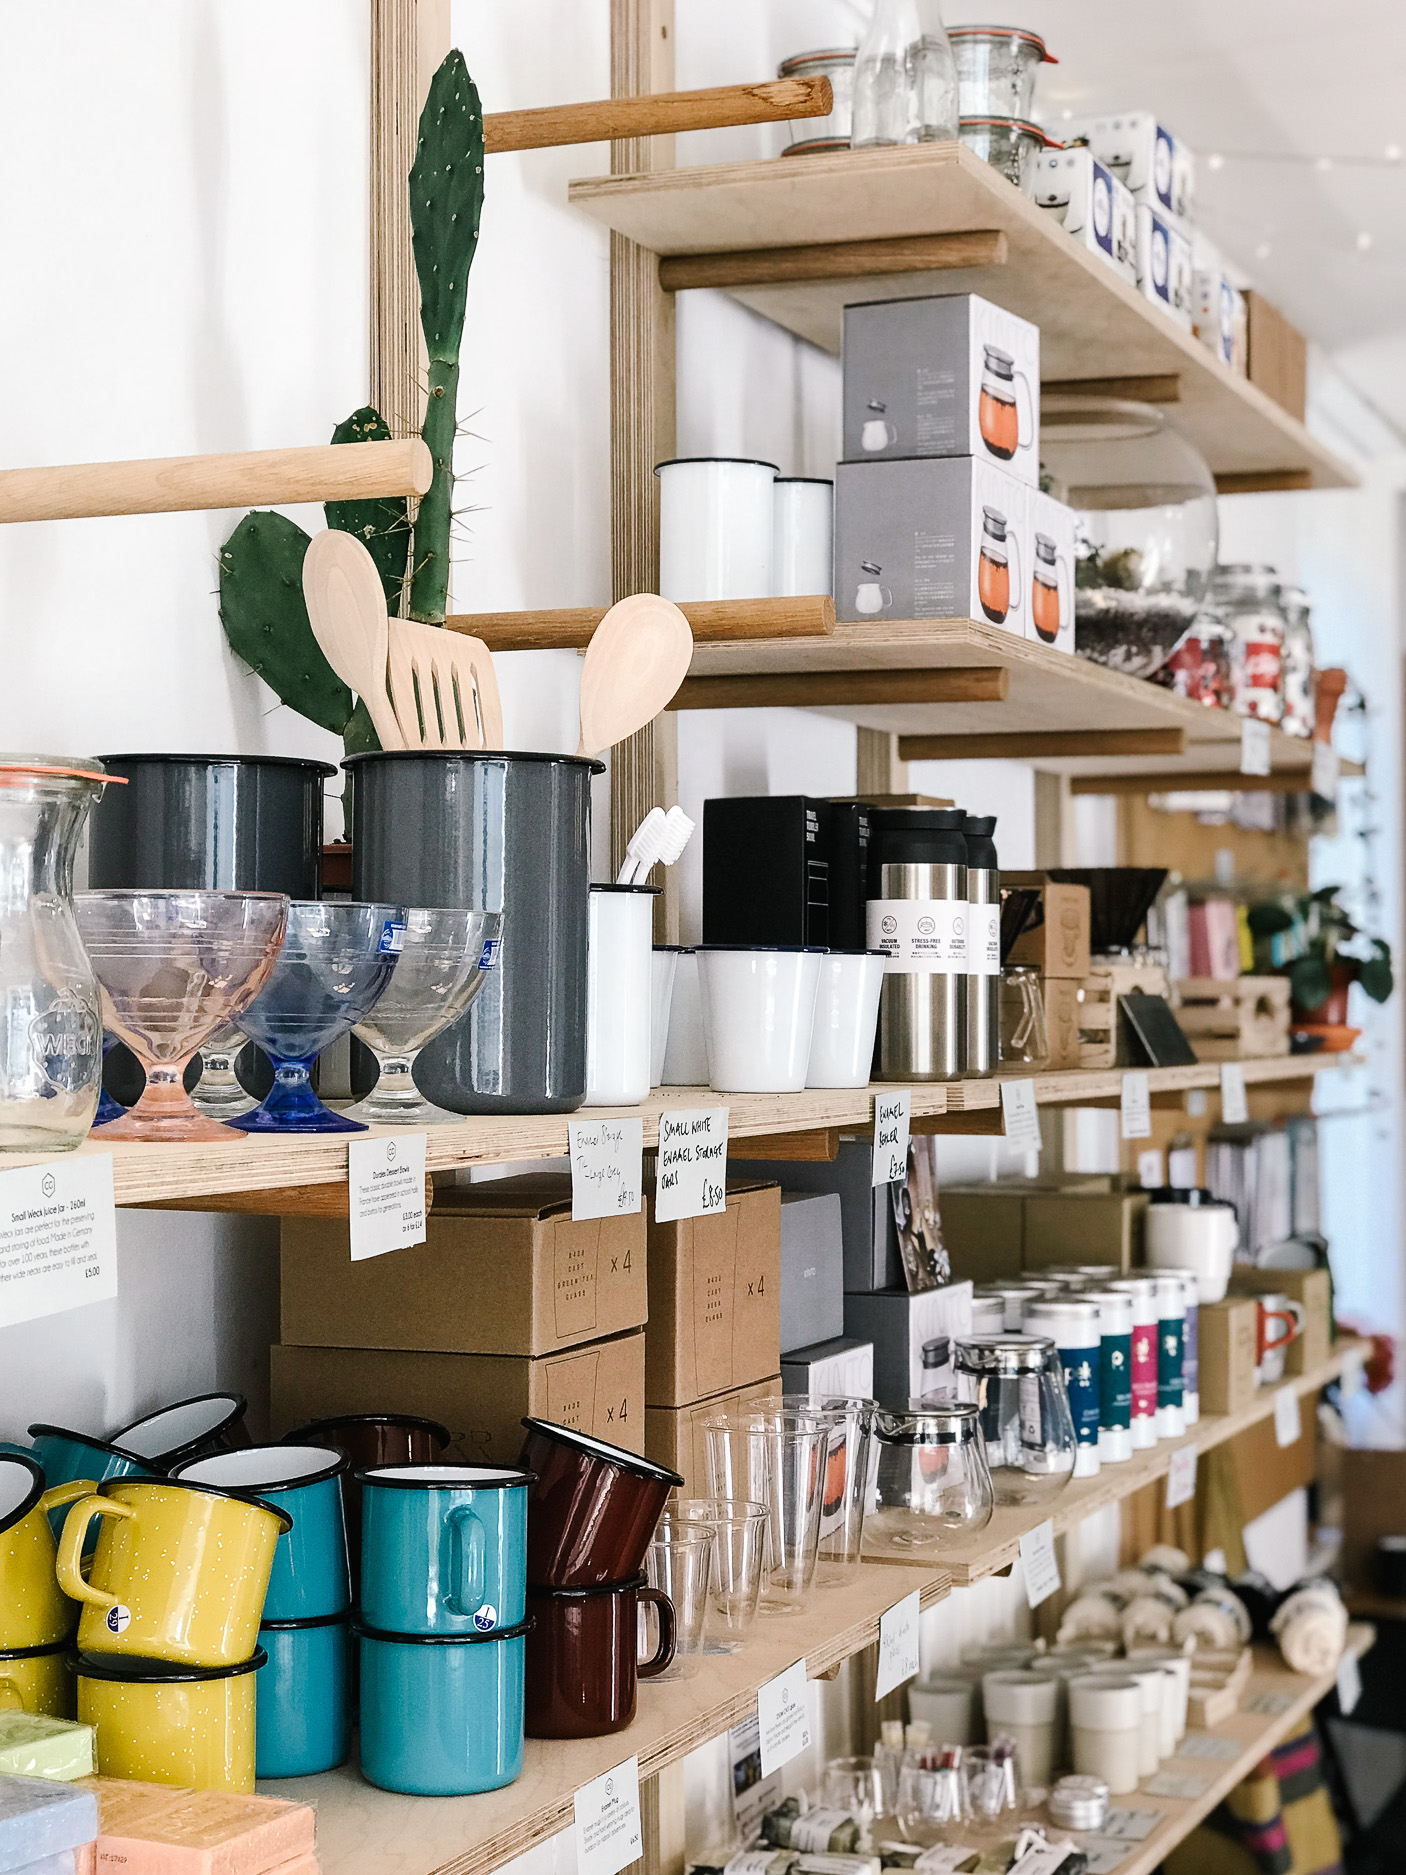 Century General Store homeware selection, Edinburgh